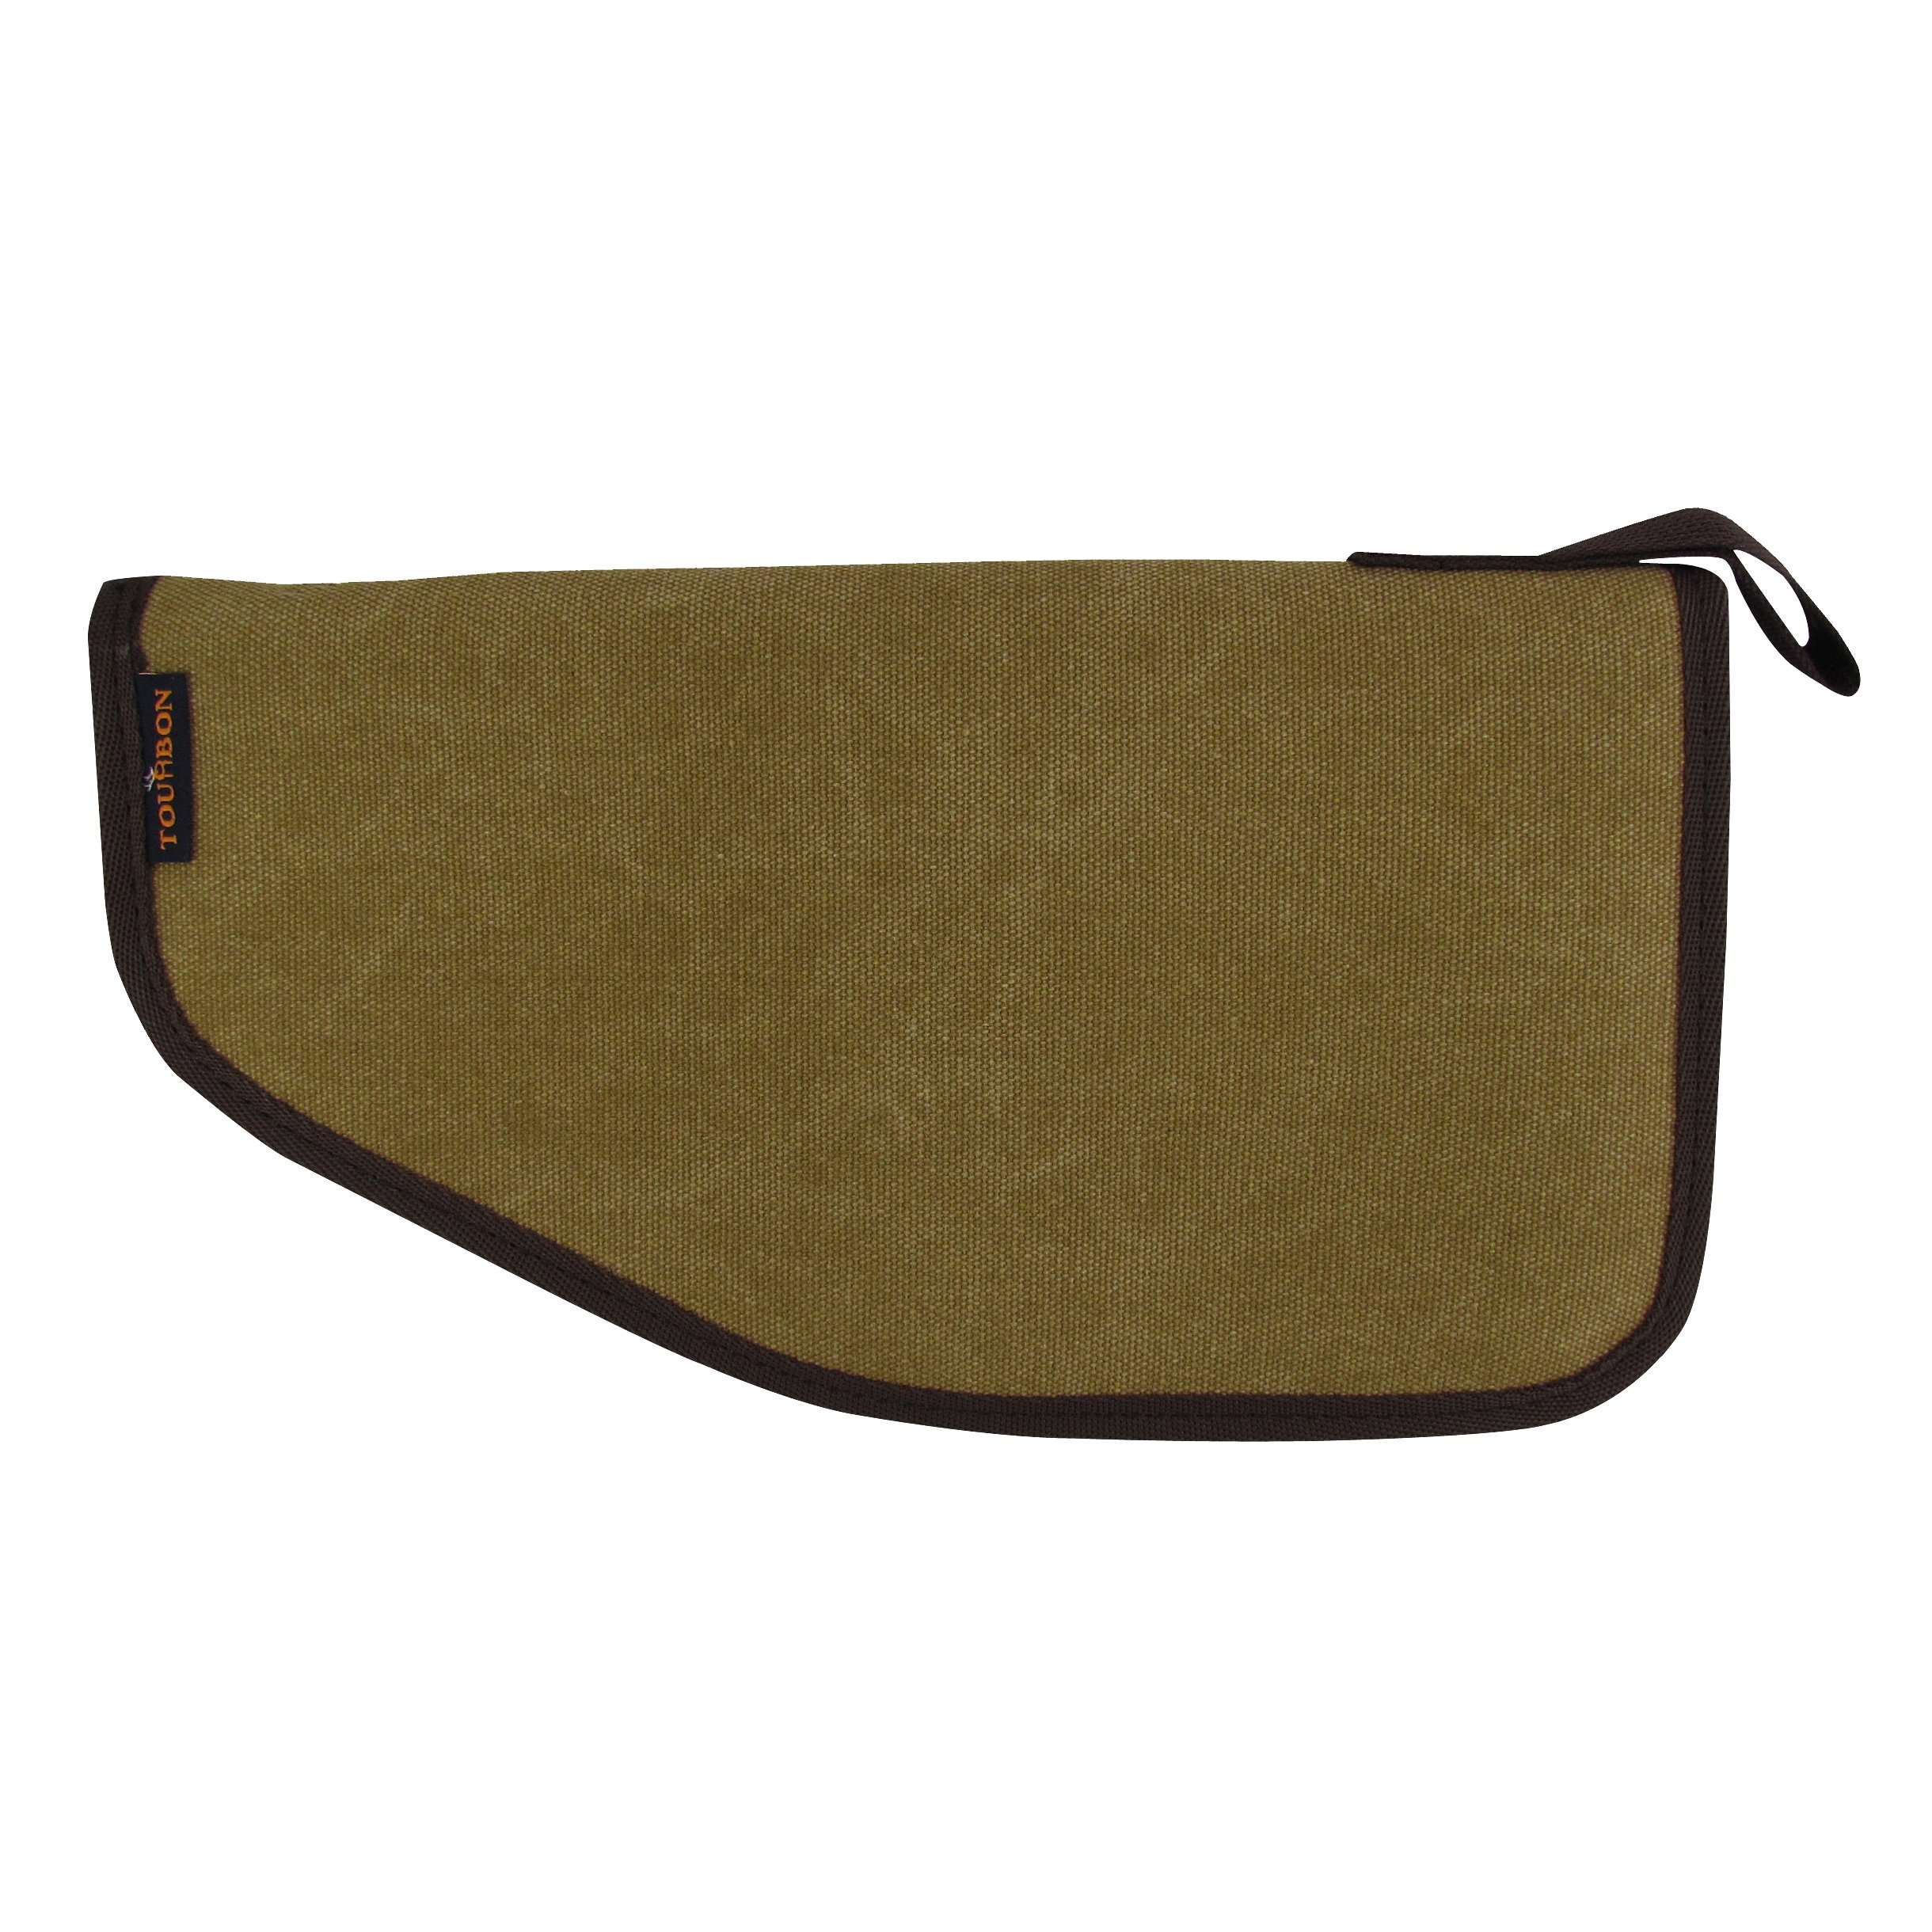 TOURBON Canvas Hand Gun Pouch Pistol Rug with Gun Accessories Pocket by TOURBON (Image #2)